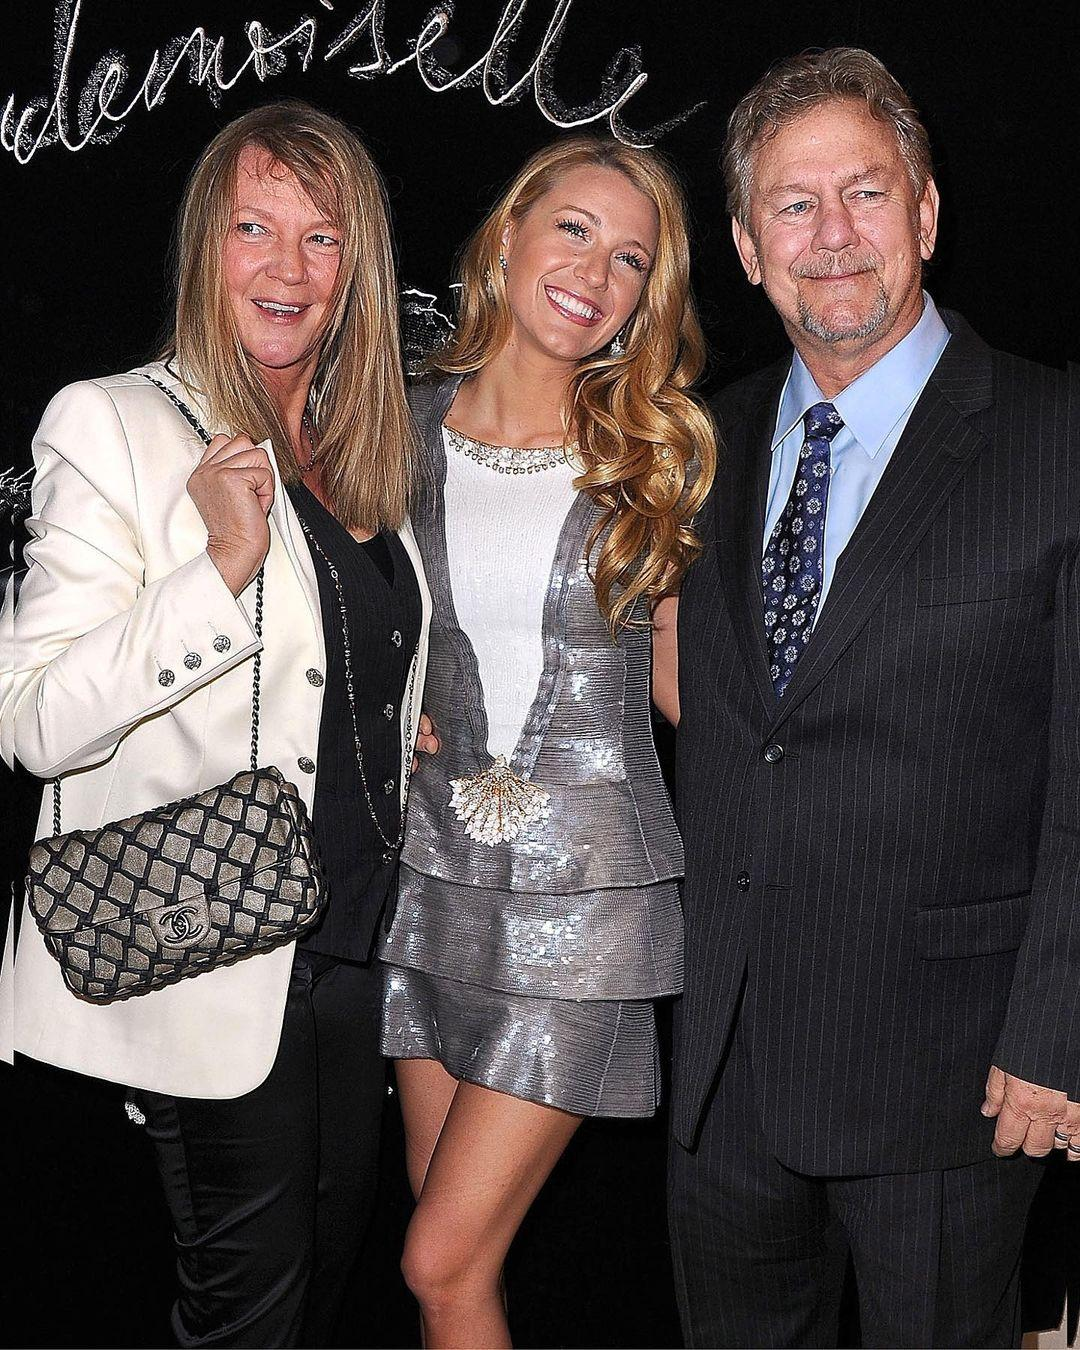 Blake Lively and her parents